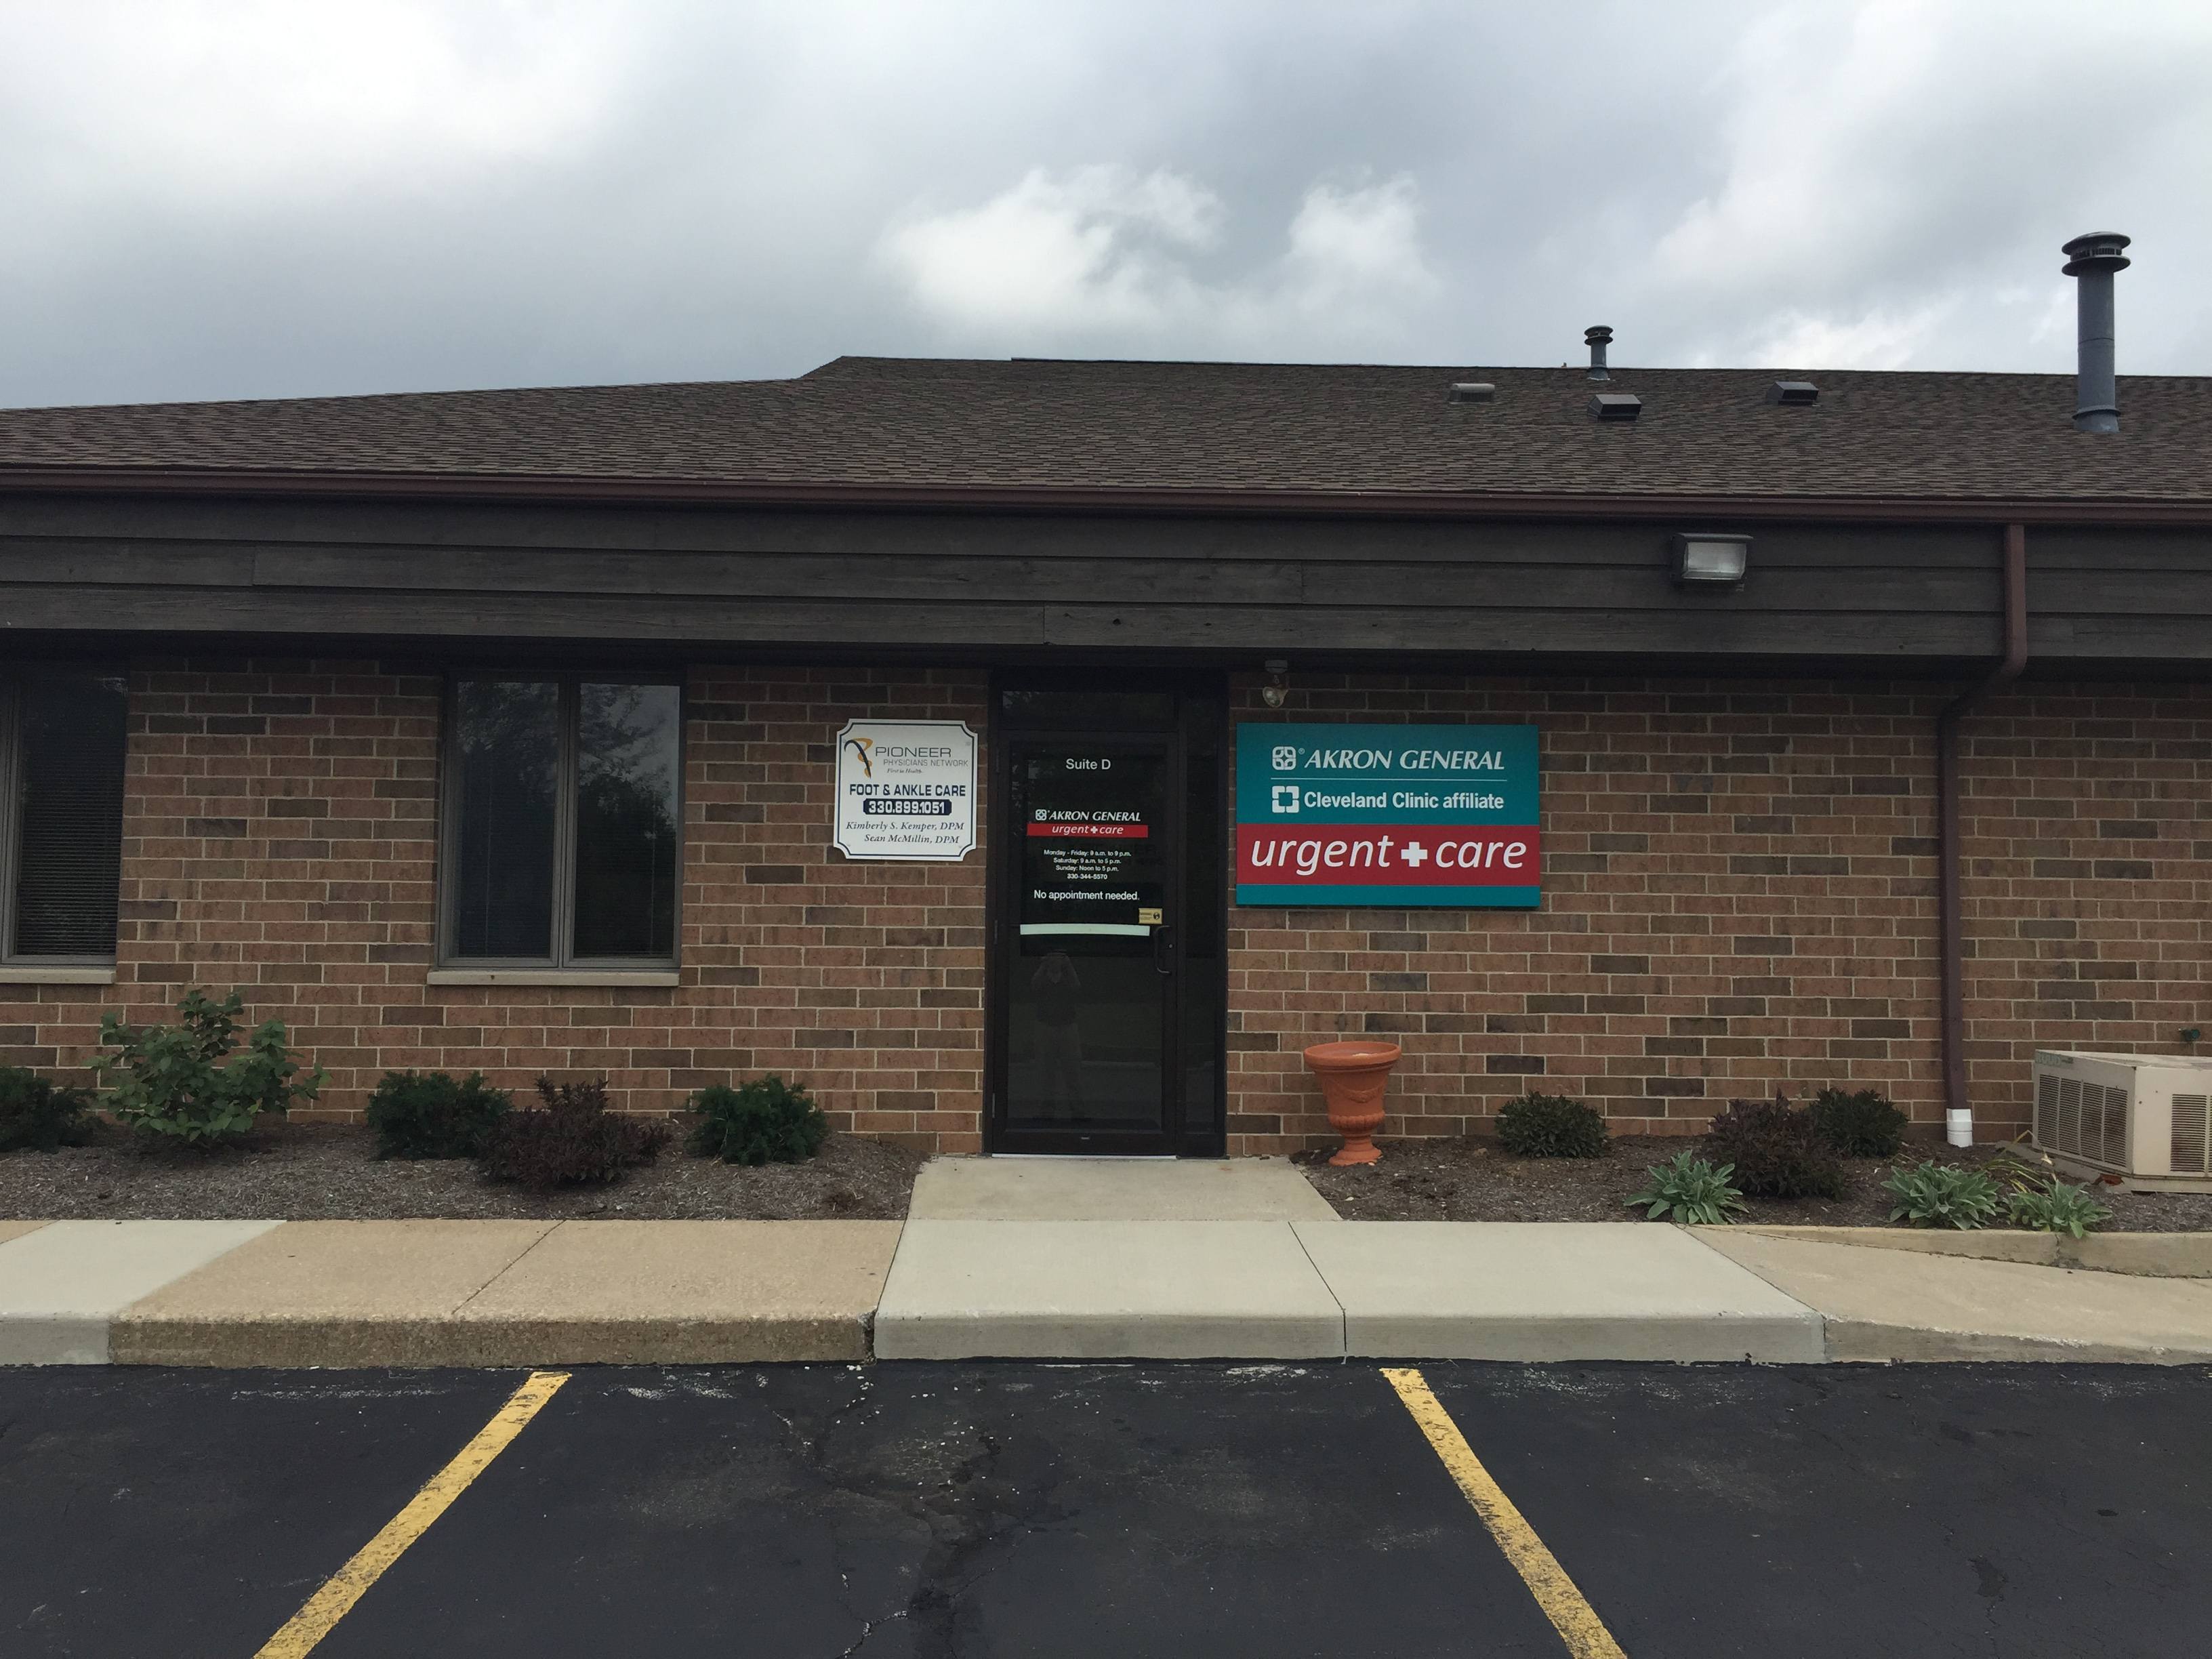 Stow urgent care phone number